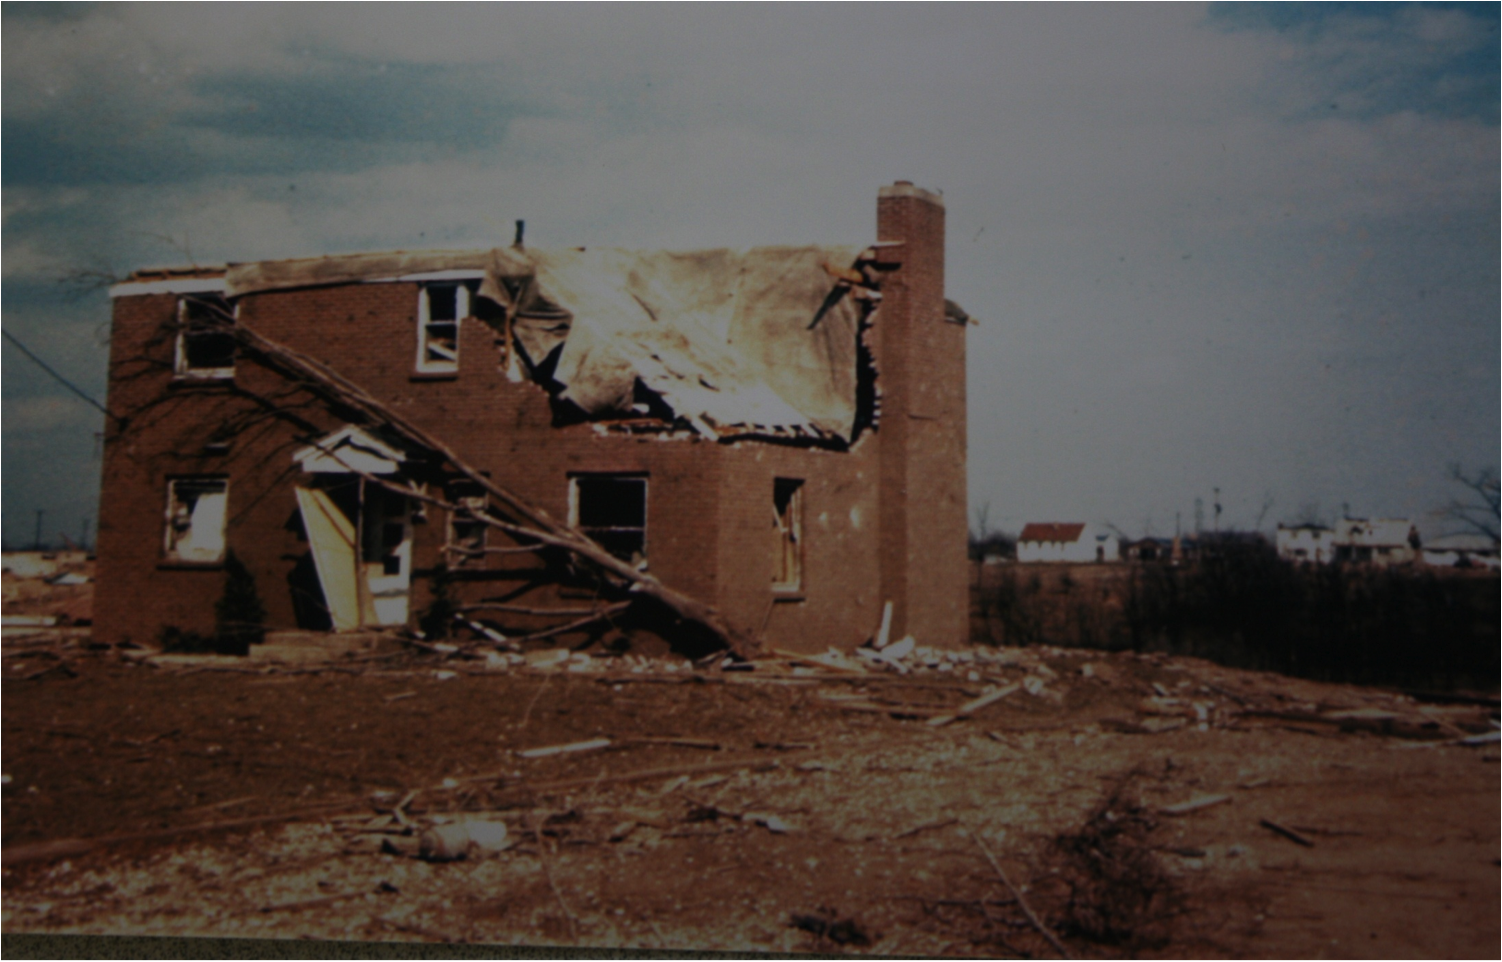 Parsonage after Tornado